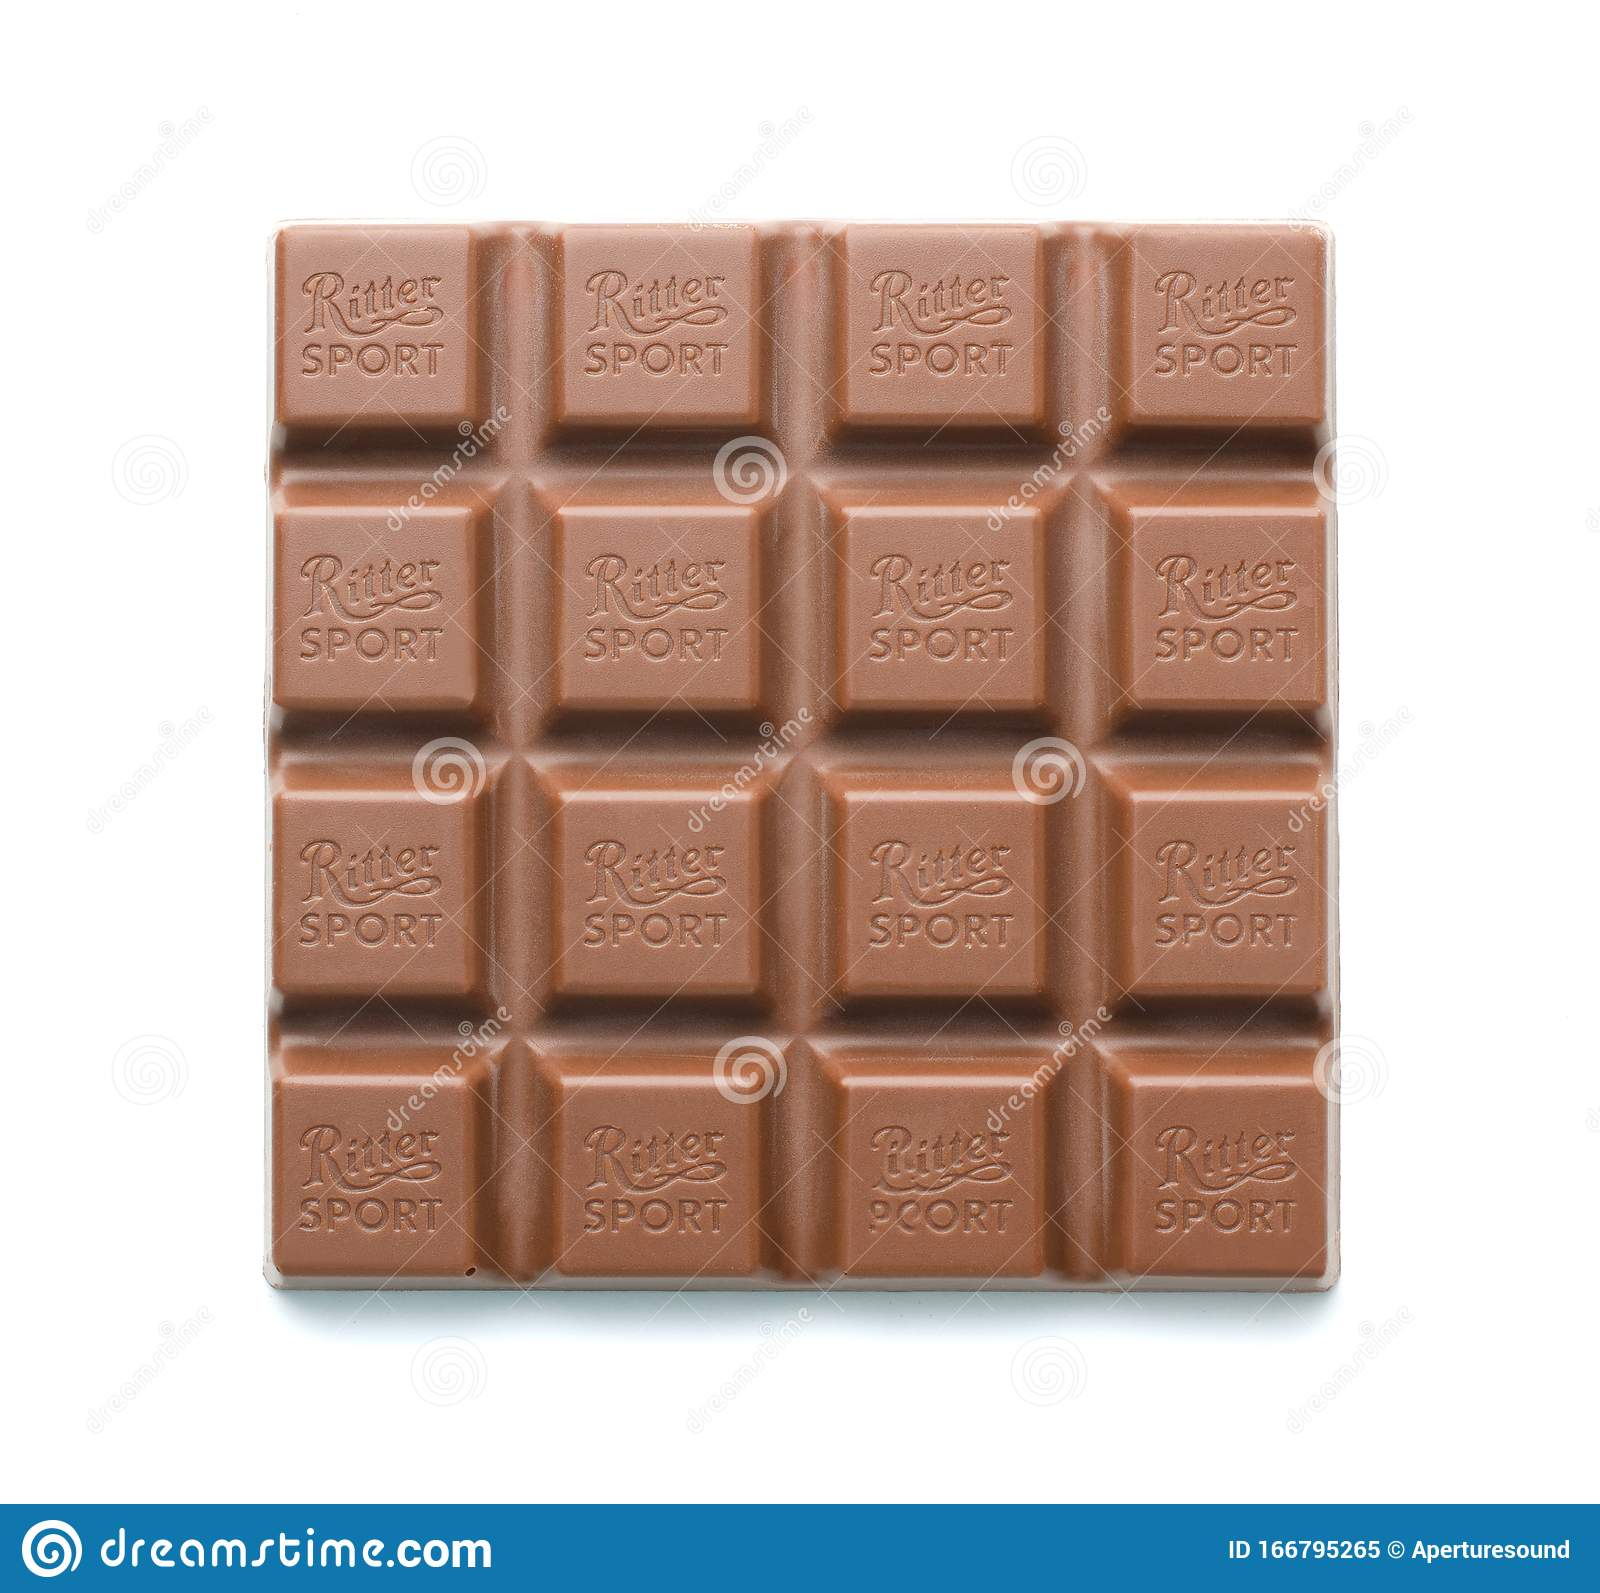 Ritter Sport Milk Chocolate Bar Editorial Image Image Of Brown Coconut 166795265